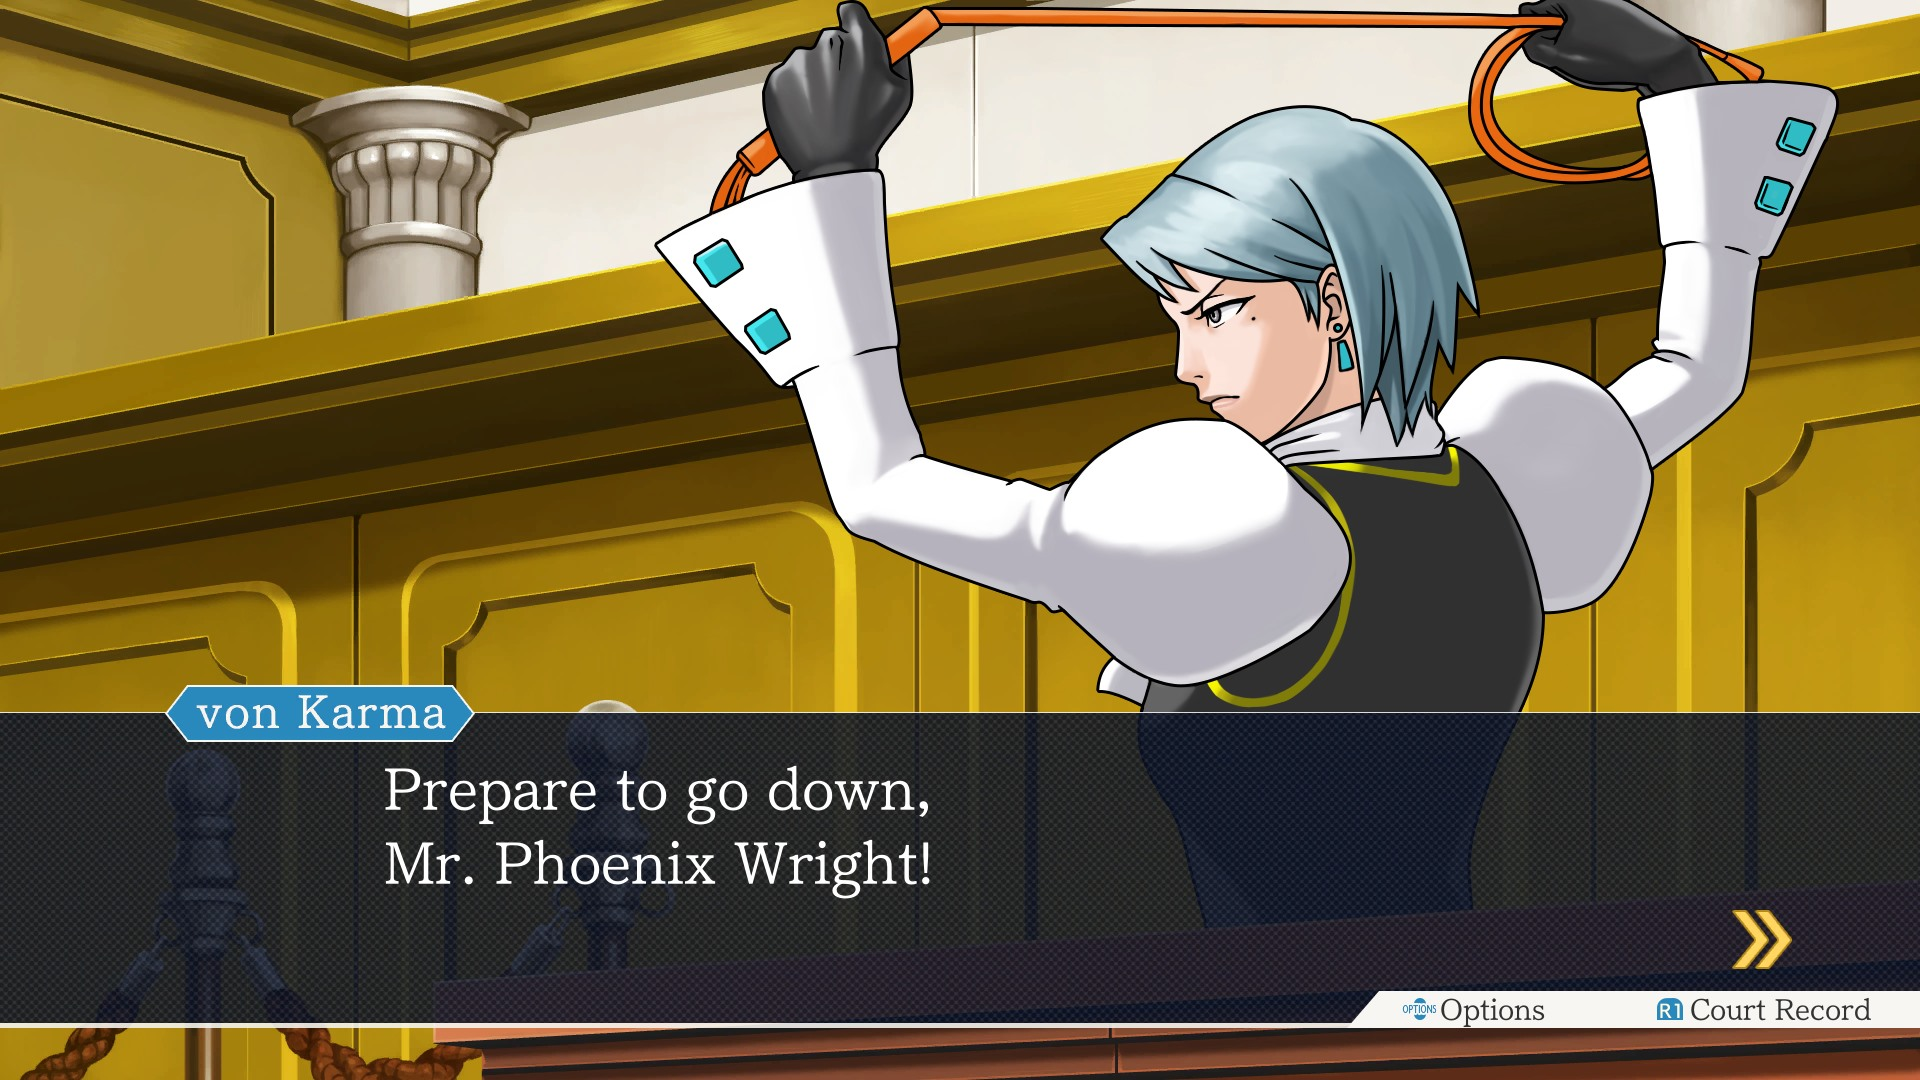 Dating fight phoenix wright